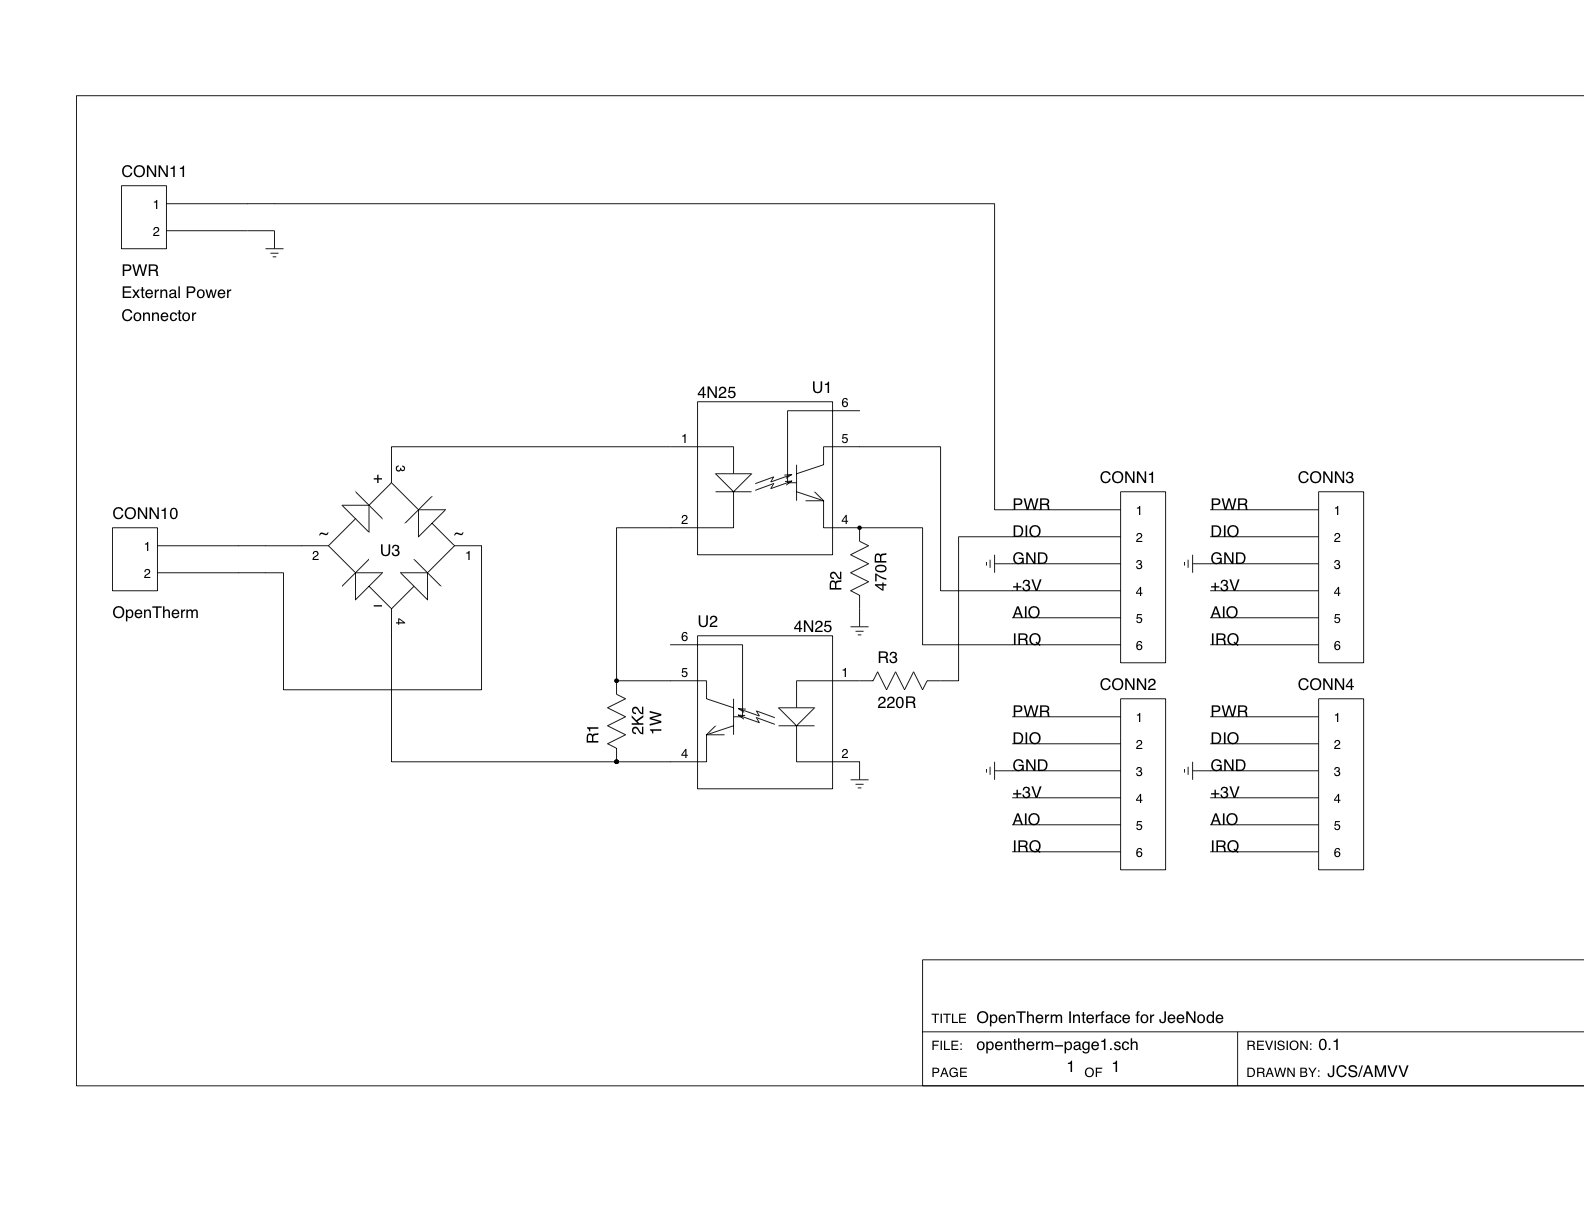 Jaagpag E Arredores Opentherm Circuit Diagram With Labels Here Is A Nice Made By Jcs From Coffee Bits And Bikes Who Helping Me It